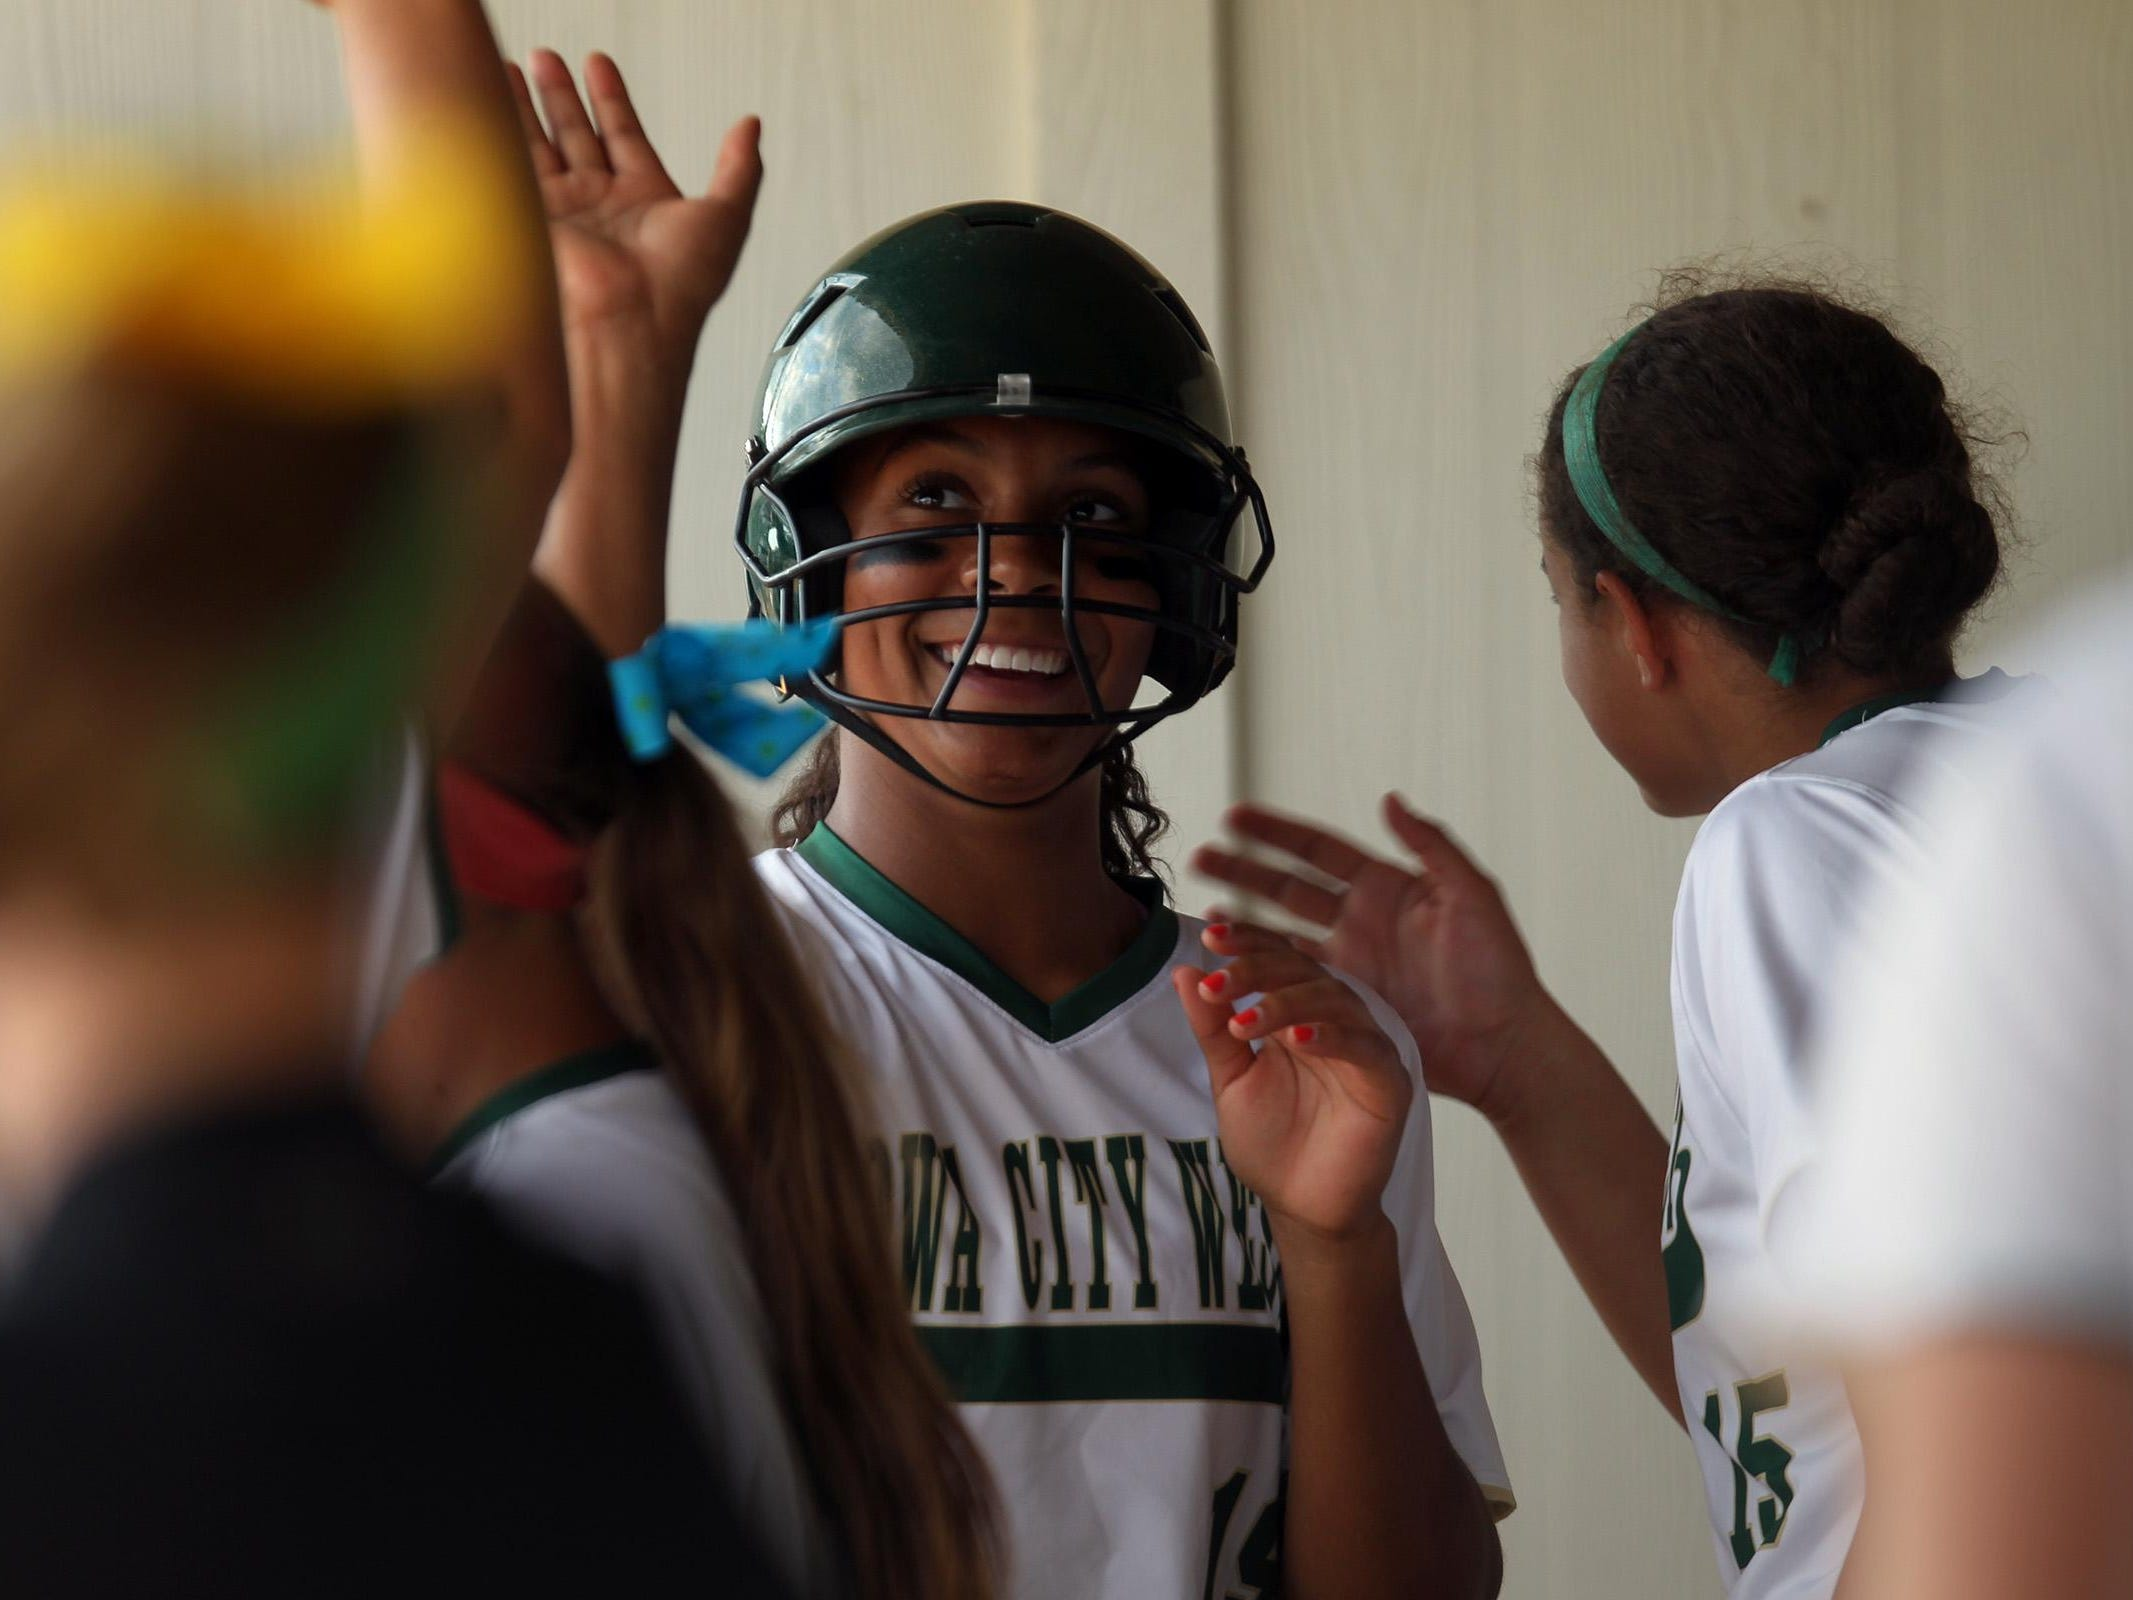 West High's Taleah Smith gets high-fives after running in a score for the Women of Troy during their Class 5A regional championship game against Ankeny at West High on Tuesday, July 14, 2015. Ankeny won, 3-1, to head to state. David Scrivner / Iowa City Press-Citizen